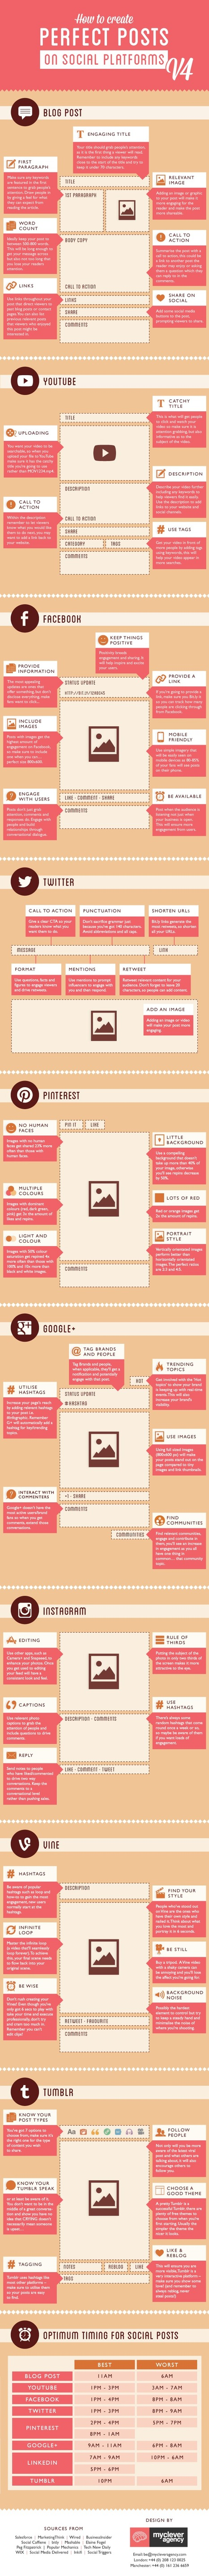 The art of creating perfect Social Media posts - infographic | AC Library News | Scoop.it